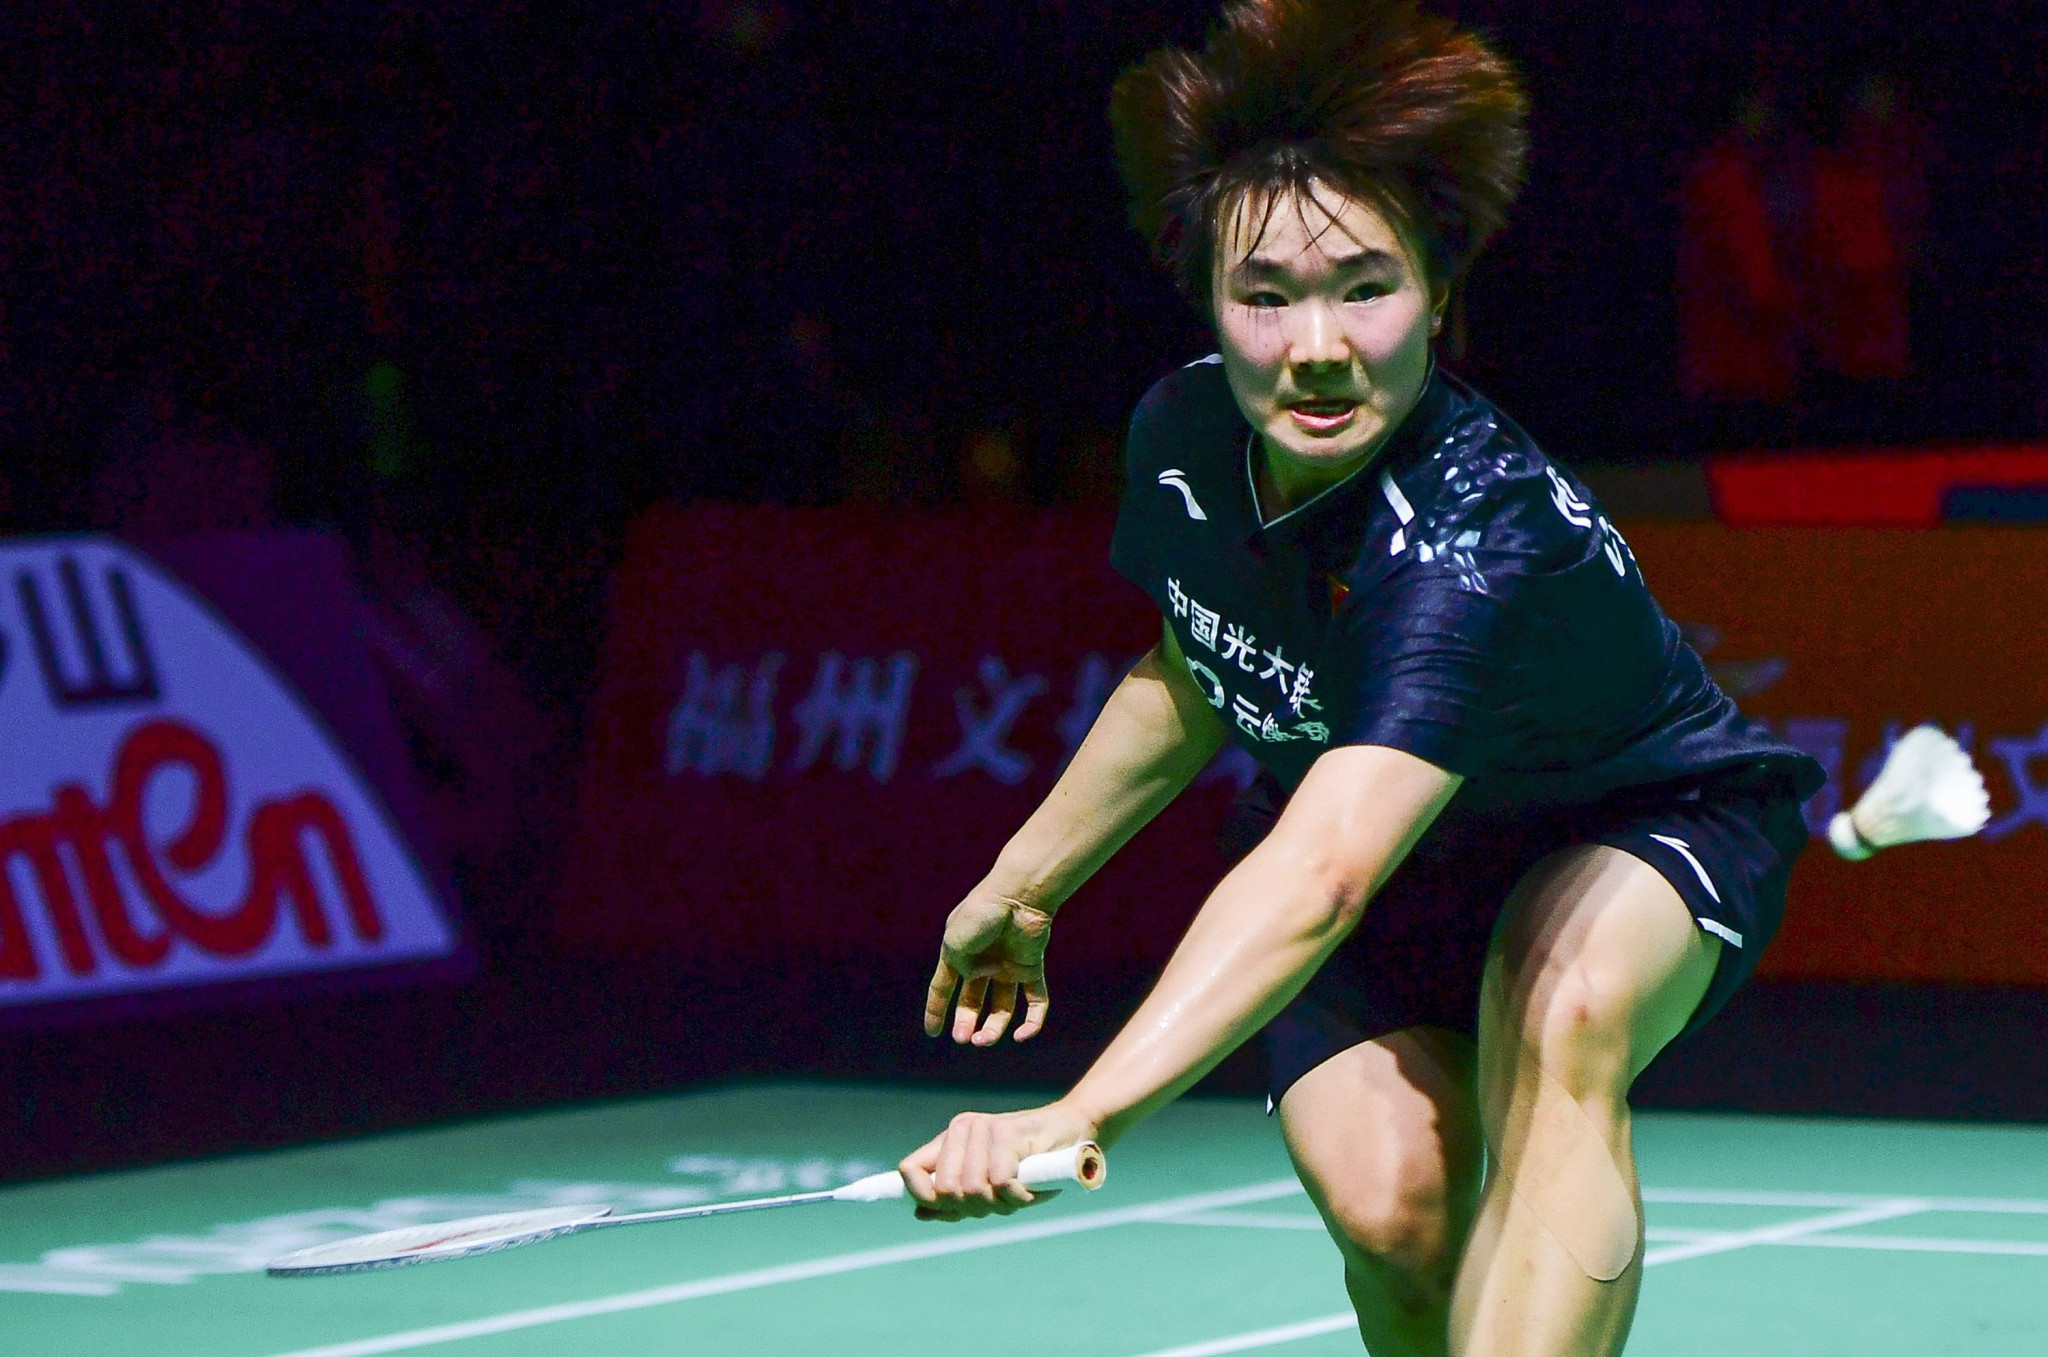 He Bingjiao of China is the women's top seed at the Syed Modi International Championships ©Getty Images